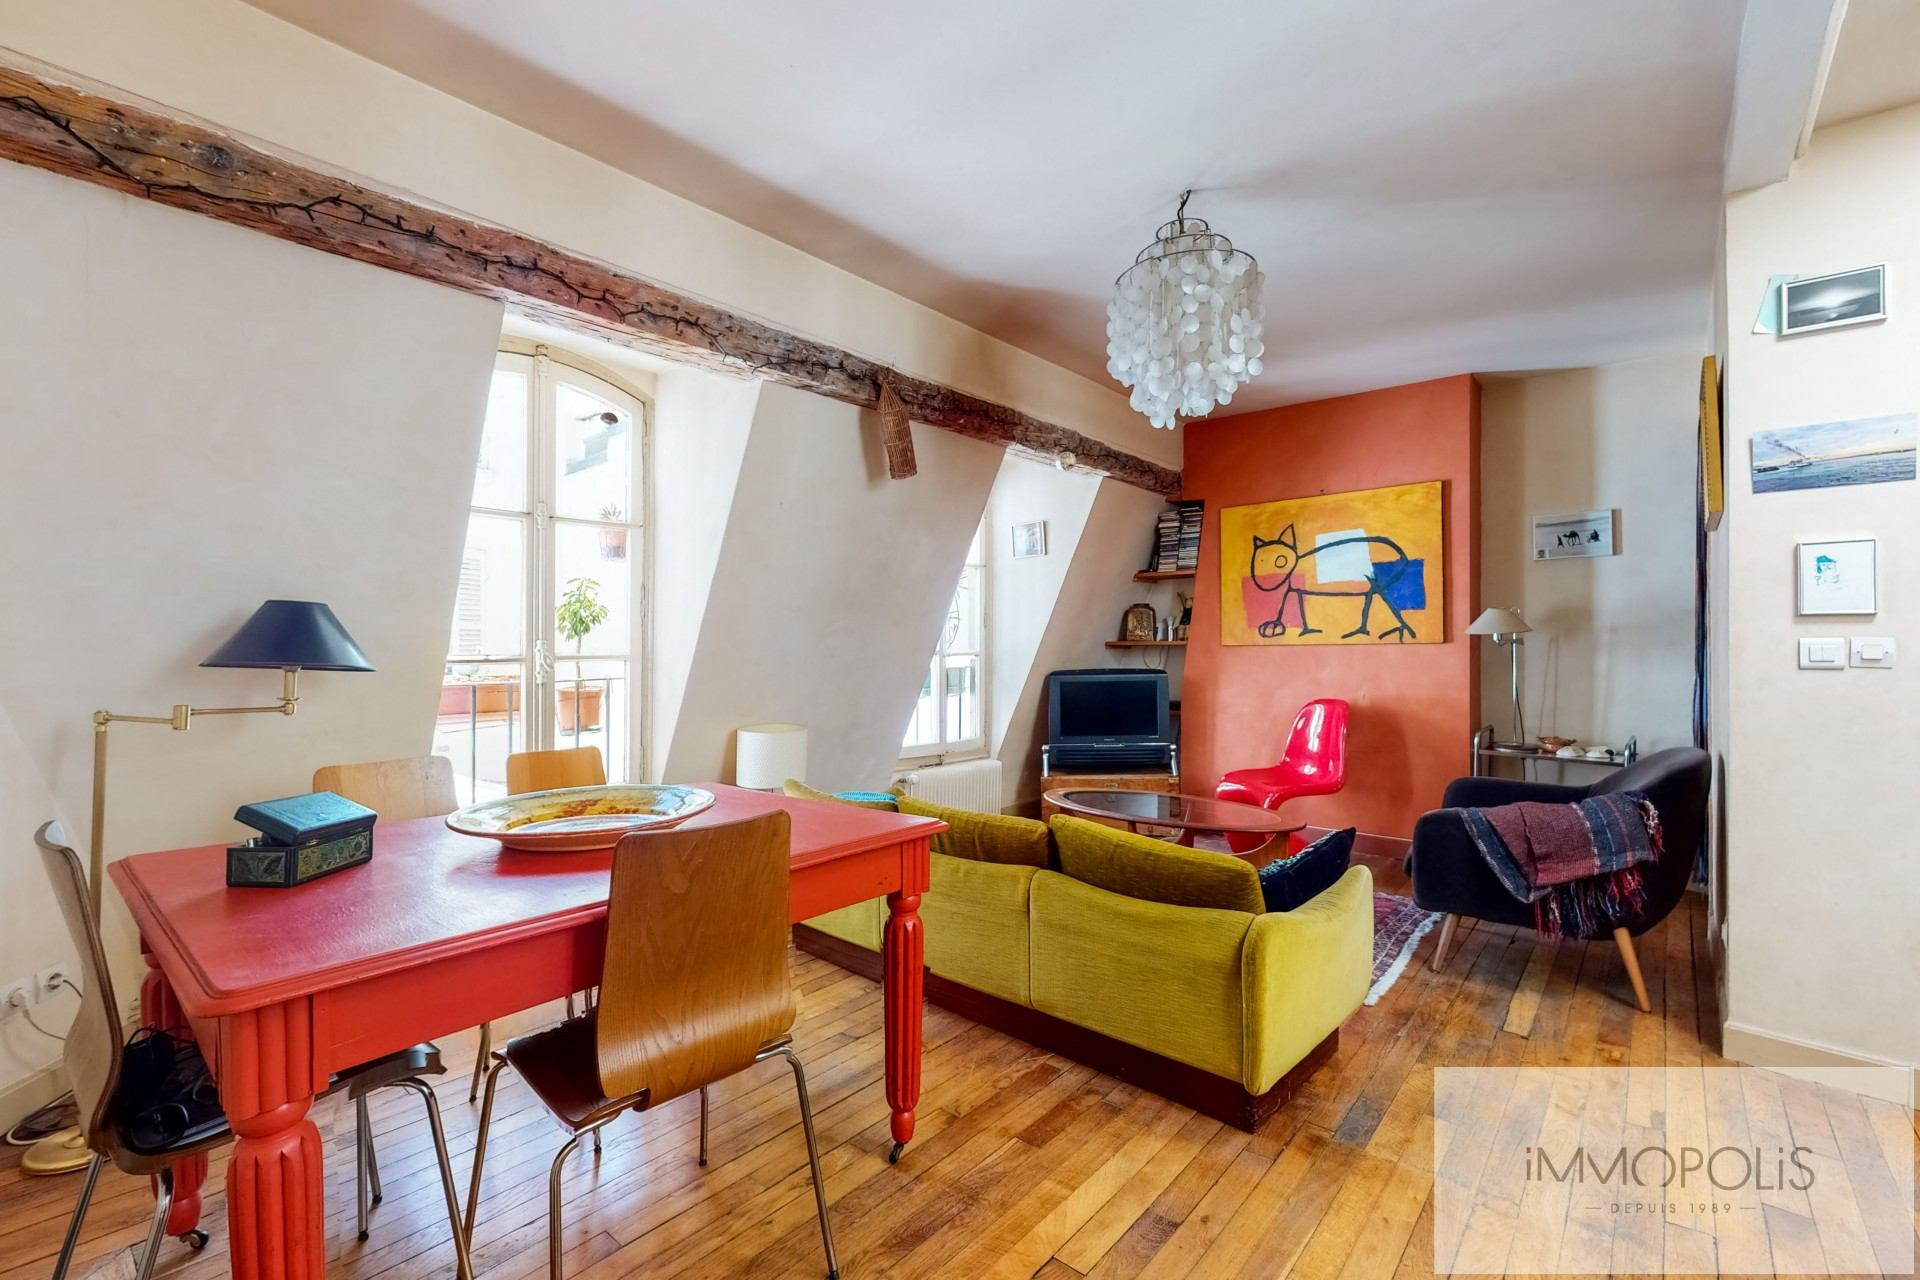 Atypical apartment to renovate, full of charm, rue Richard Lenoir – Paris XIth. 2